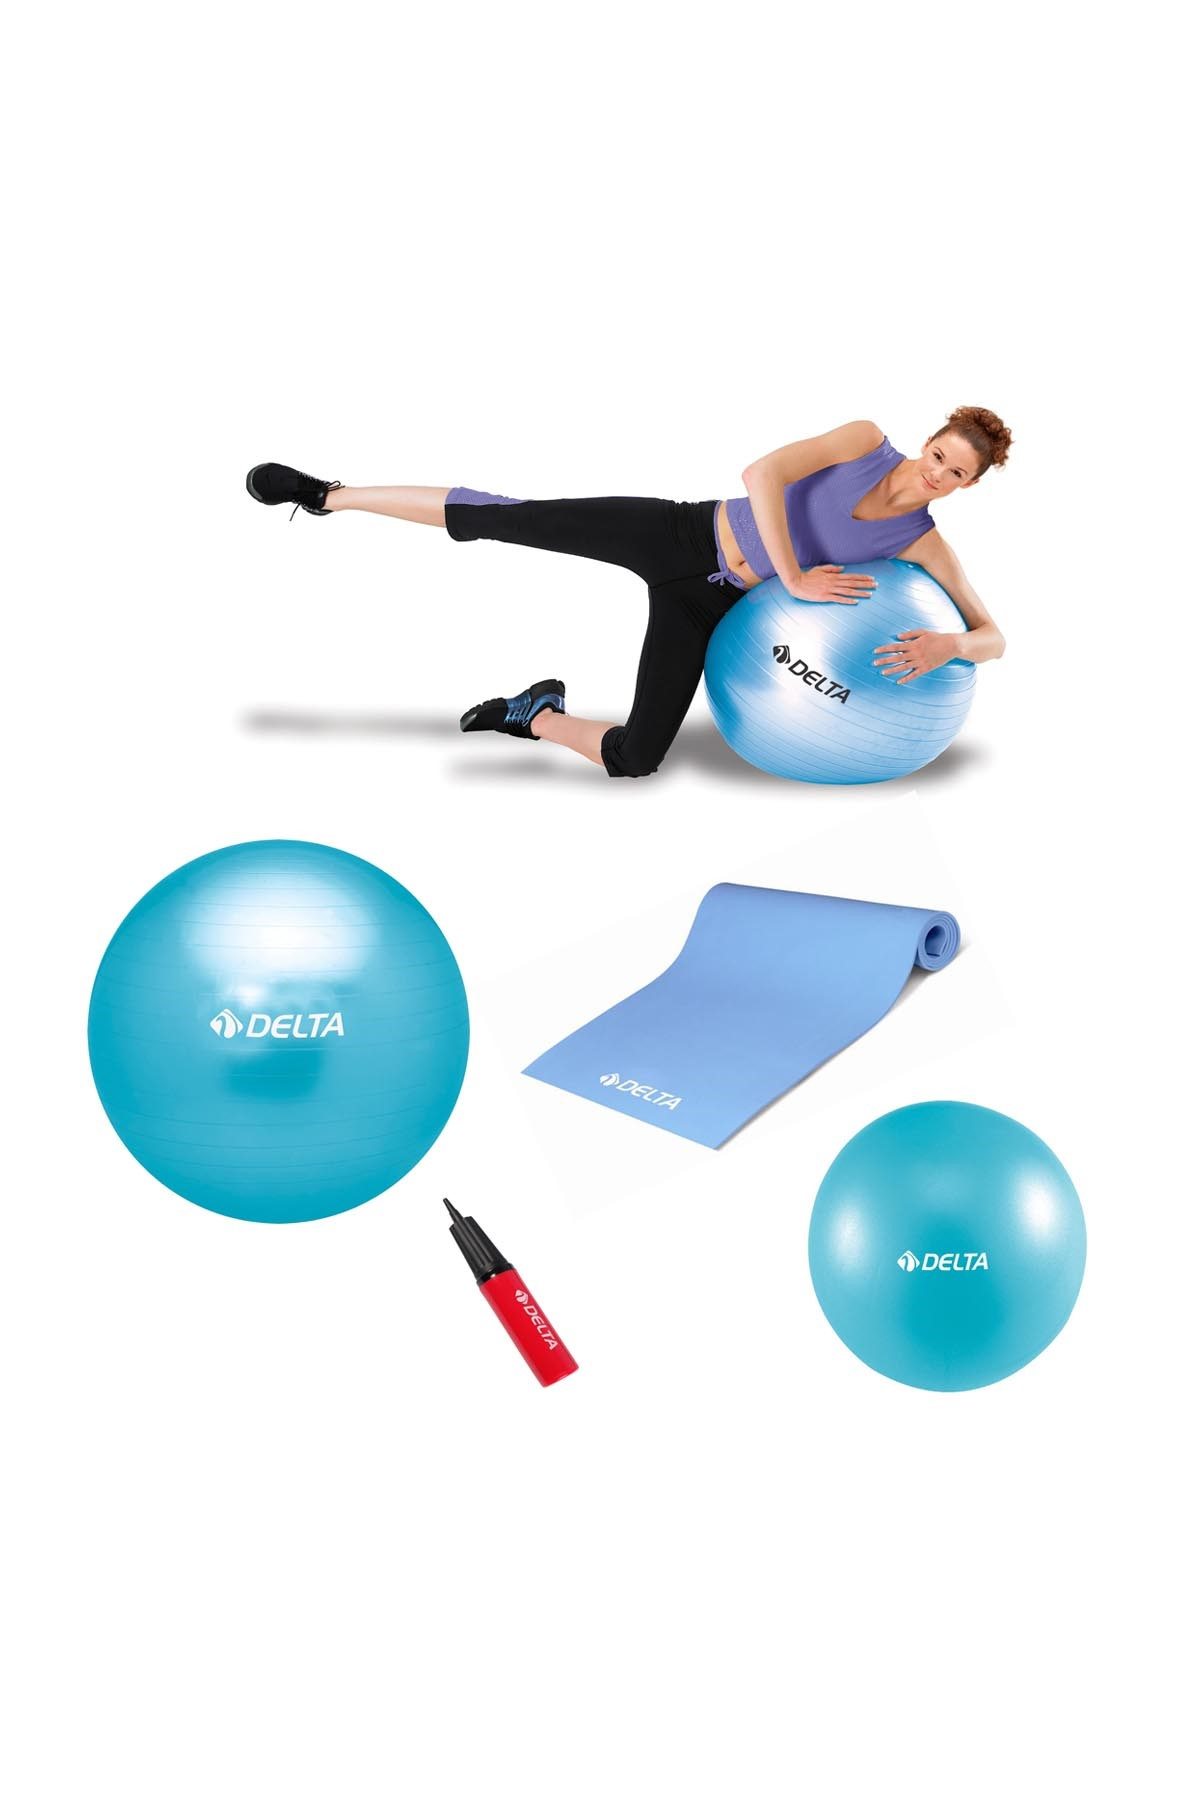 Delta 65 cm Pilates Topu 4 mm Minder 30 cm Mini Top Ve Pompa Seti 1